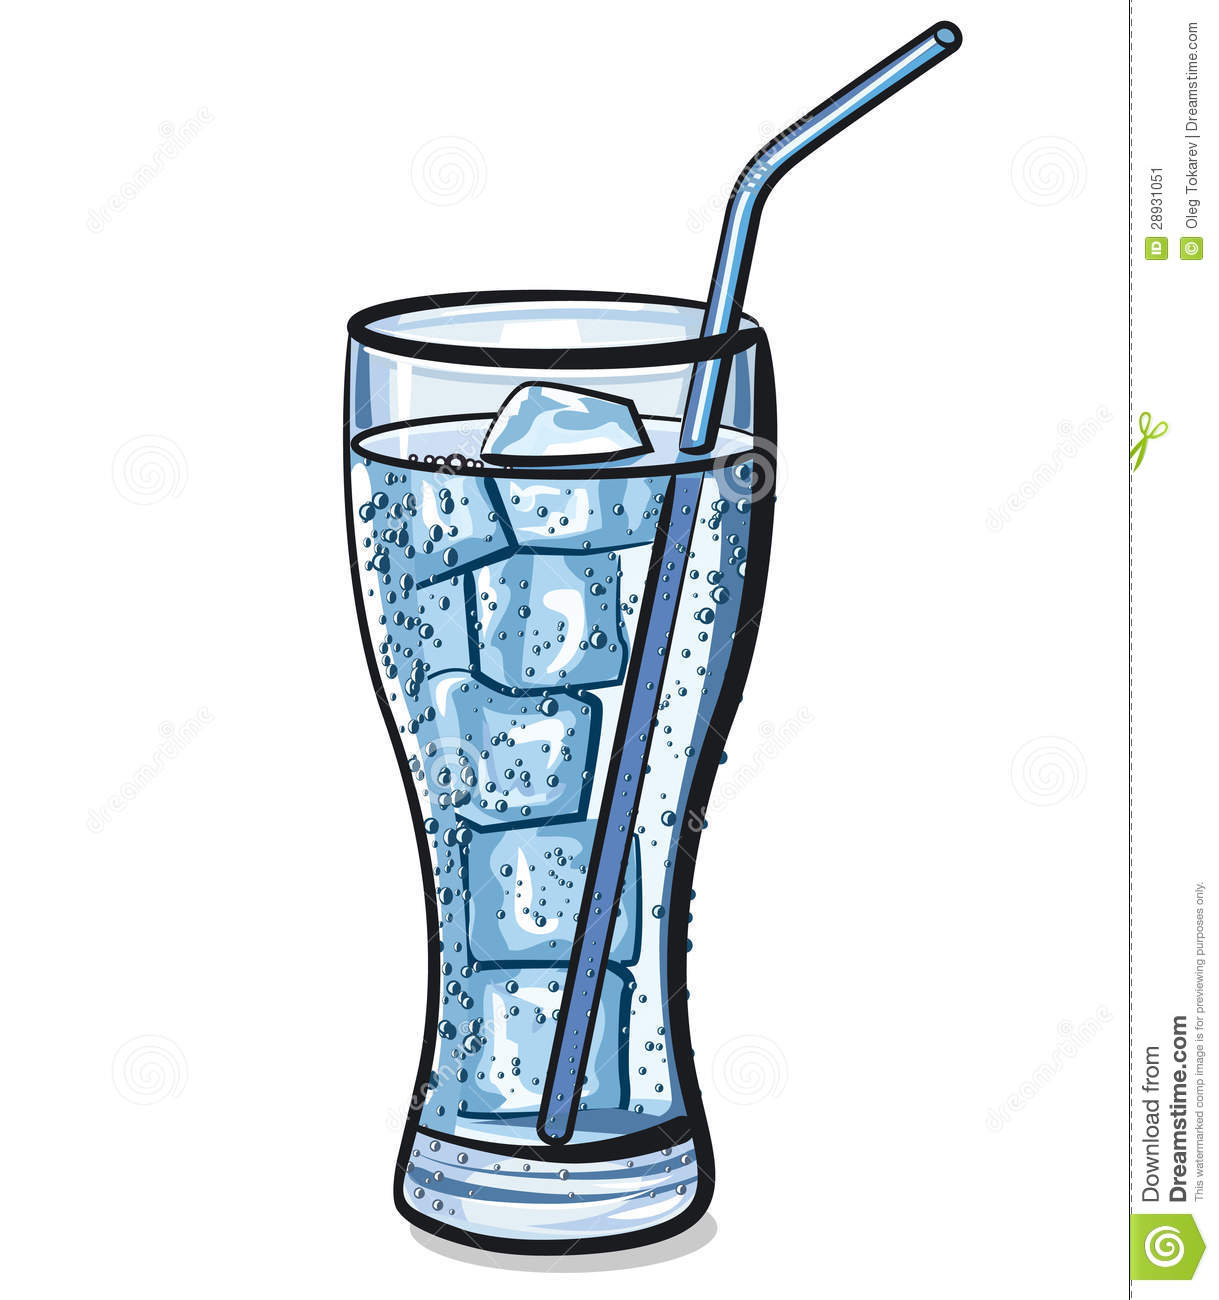 glass of water clipart